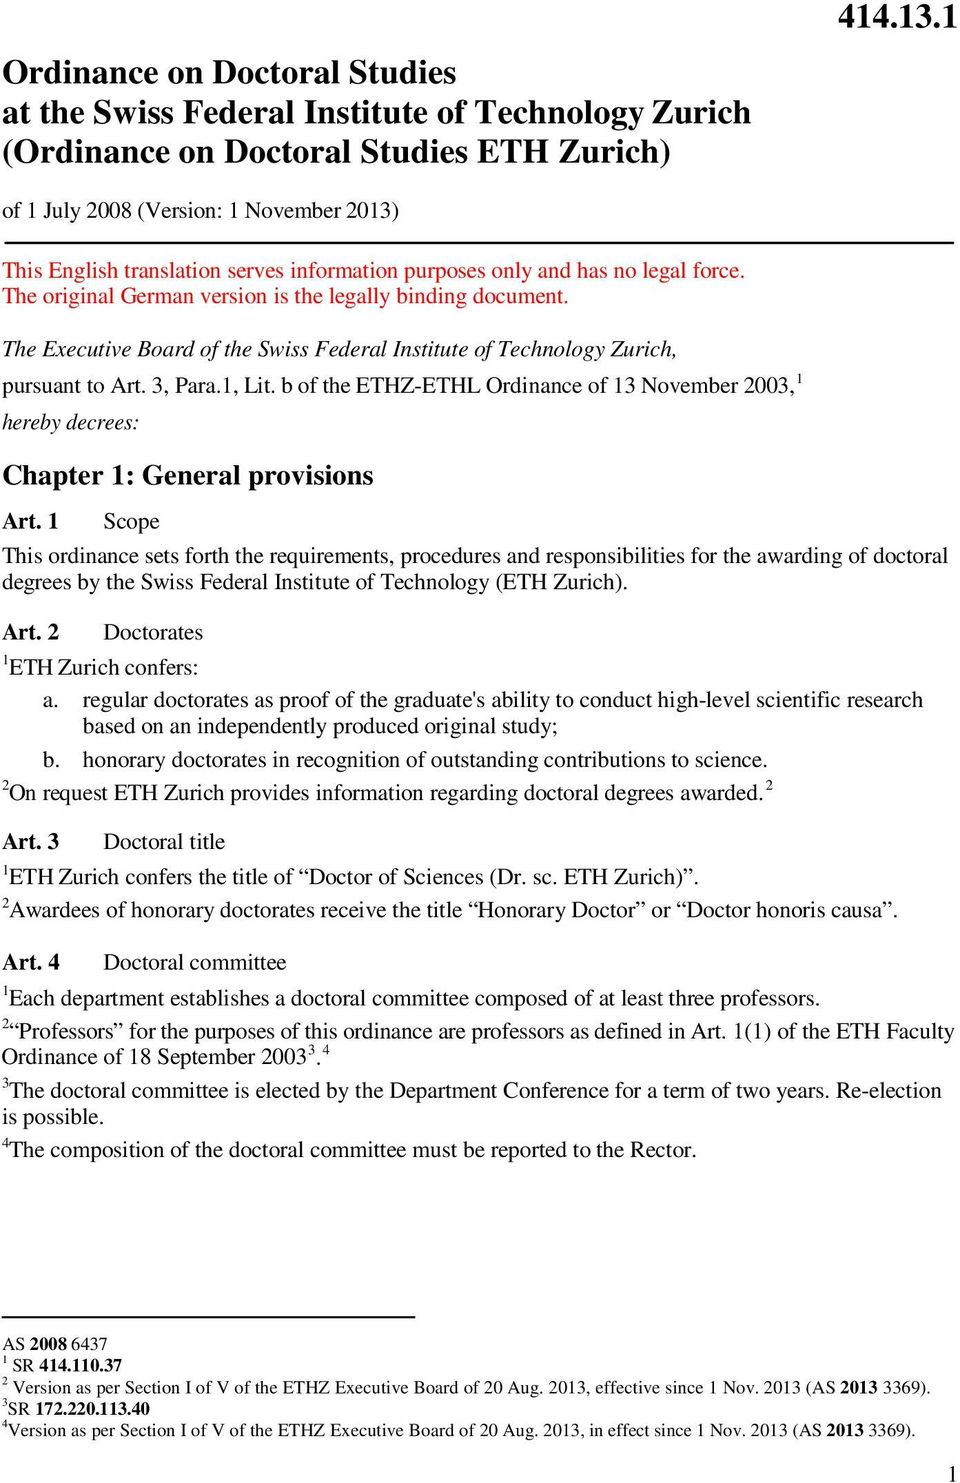 The Executive Board of the Swiss Federal Institute of Technology Zurich, pursuant to Art. 3, Para.1, Lit.